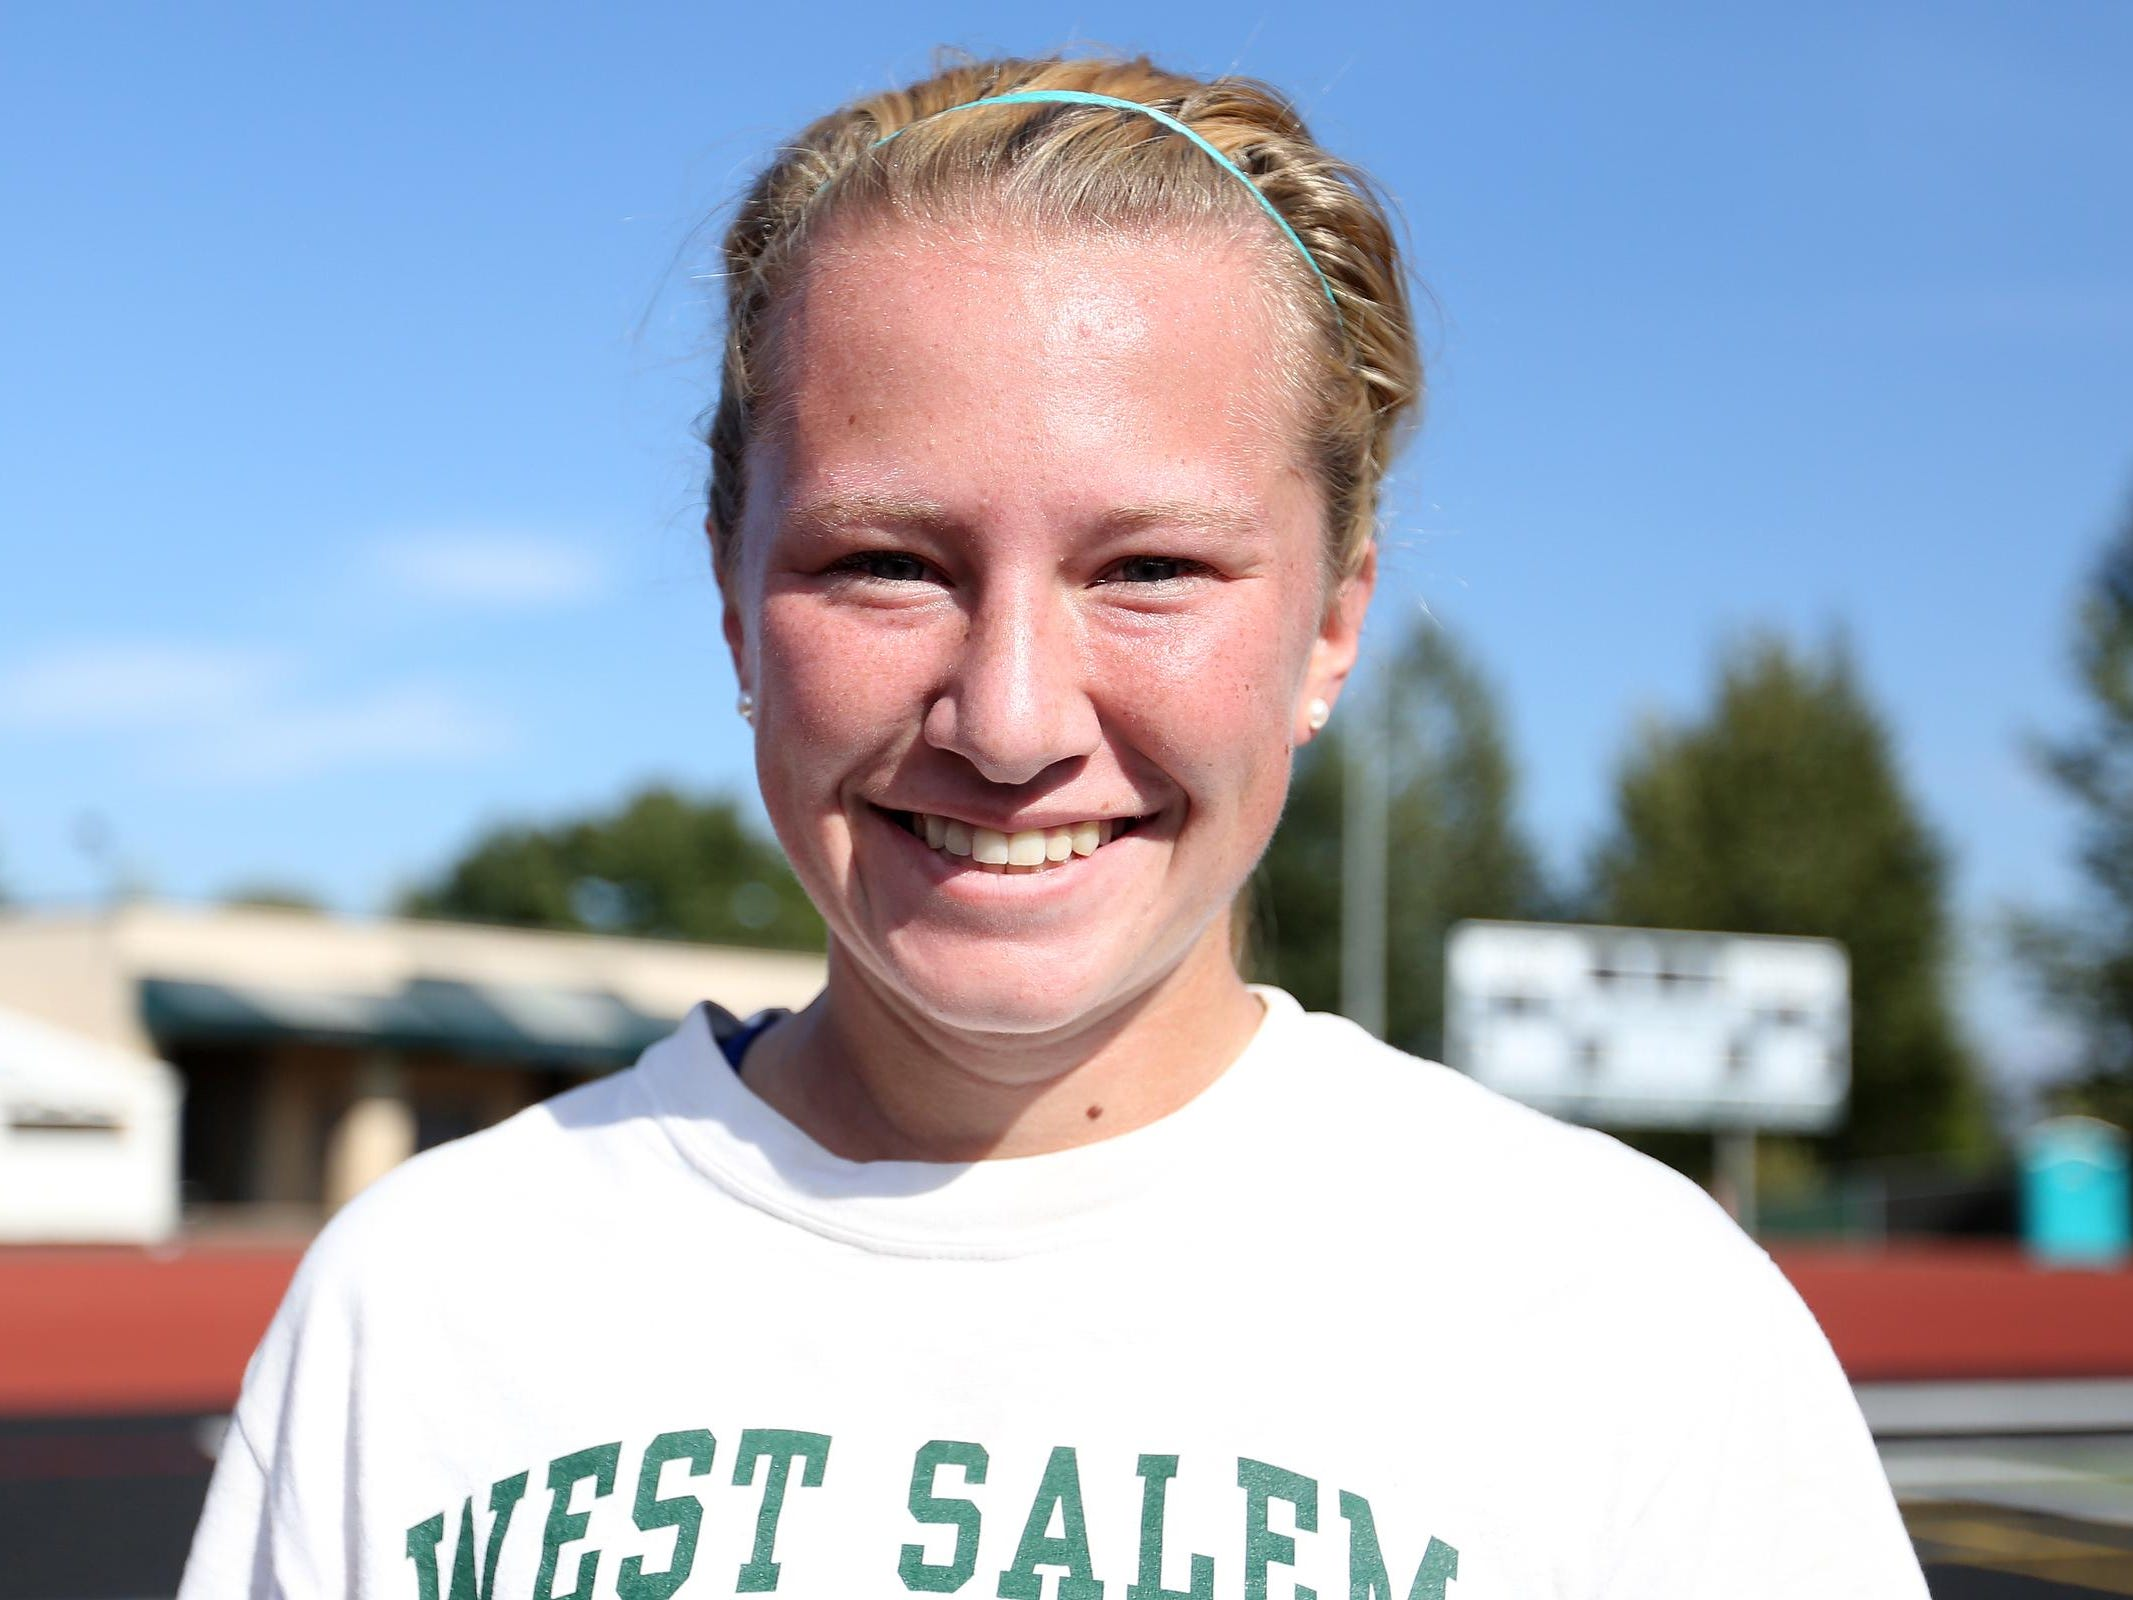 Senior Anna Norrenberns during girl's soccer practice at West Salem High School on Thursday, Aug. 27, 2015.